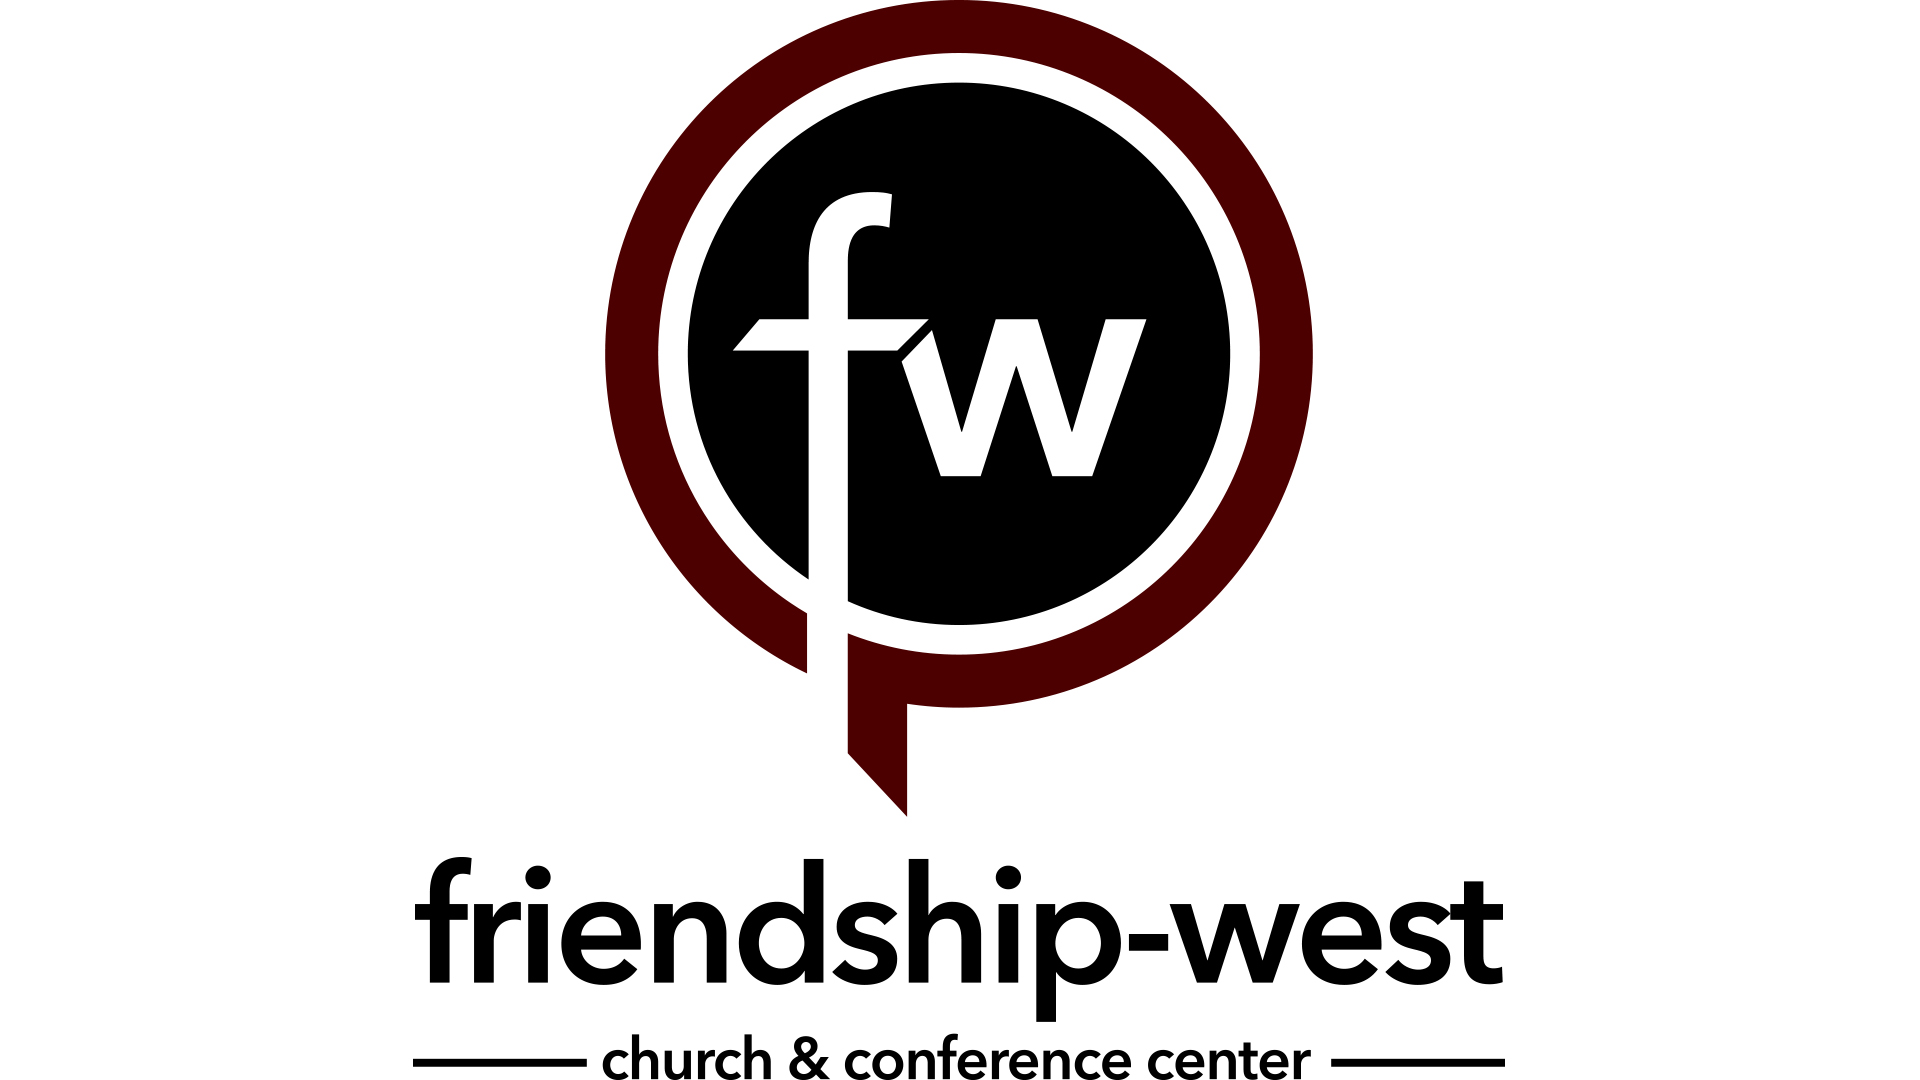 Friendship-West Online Store